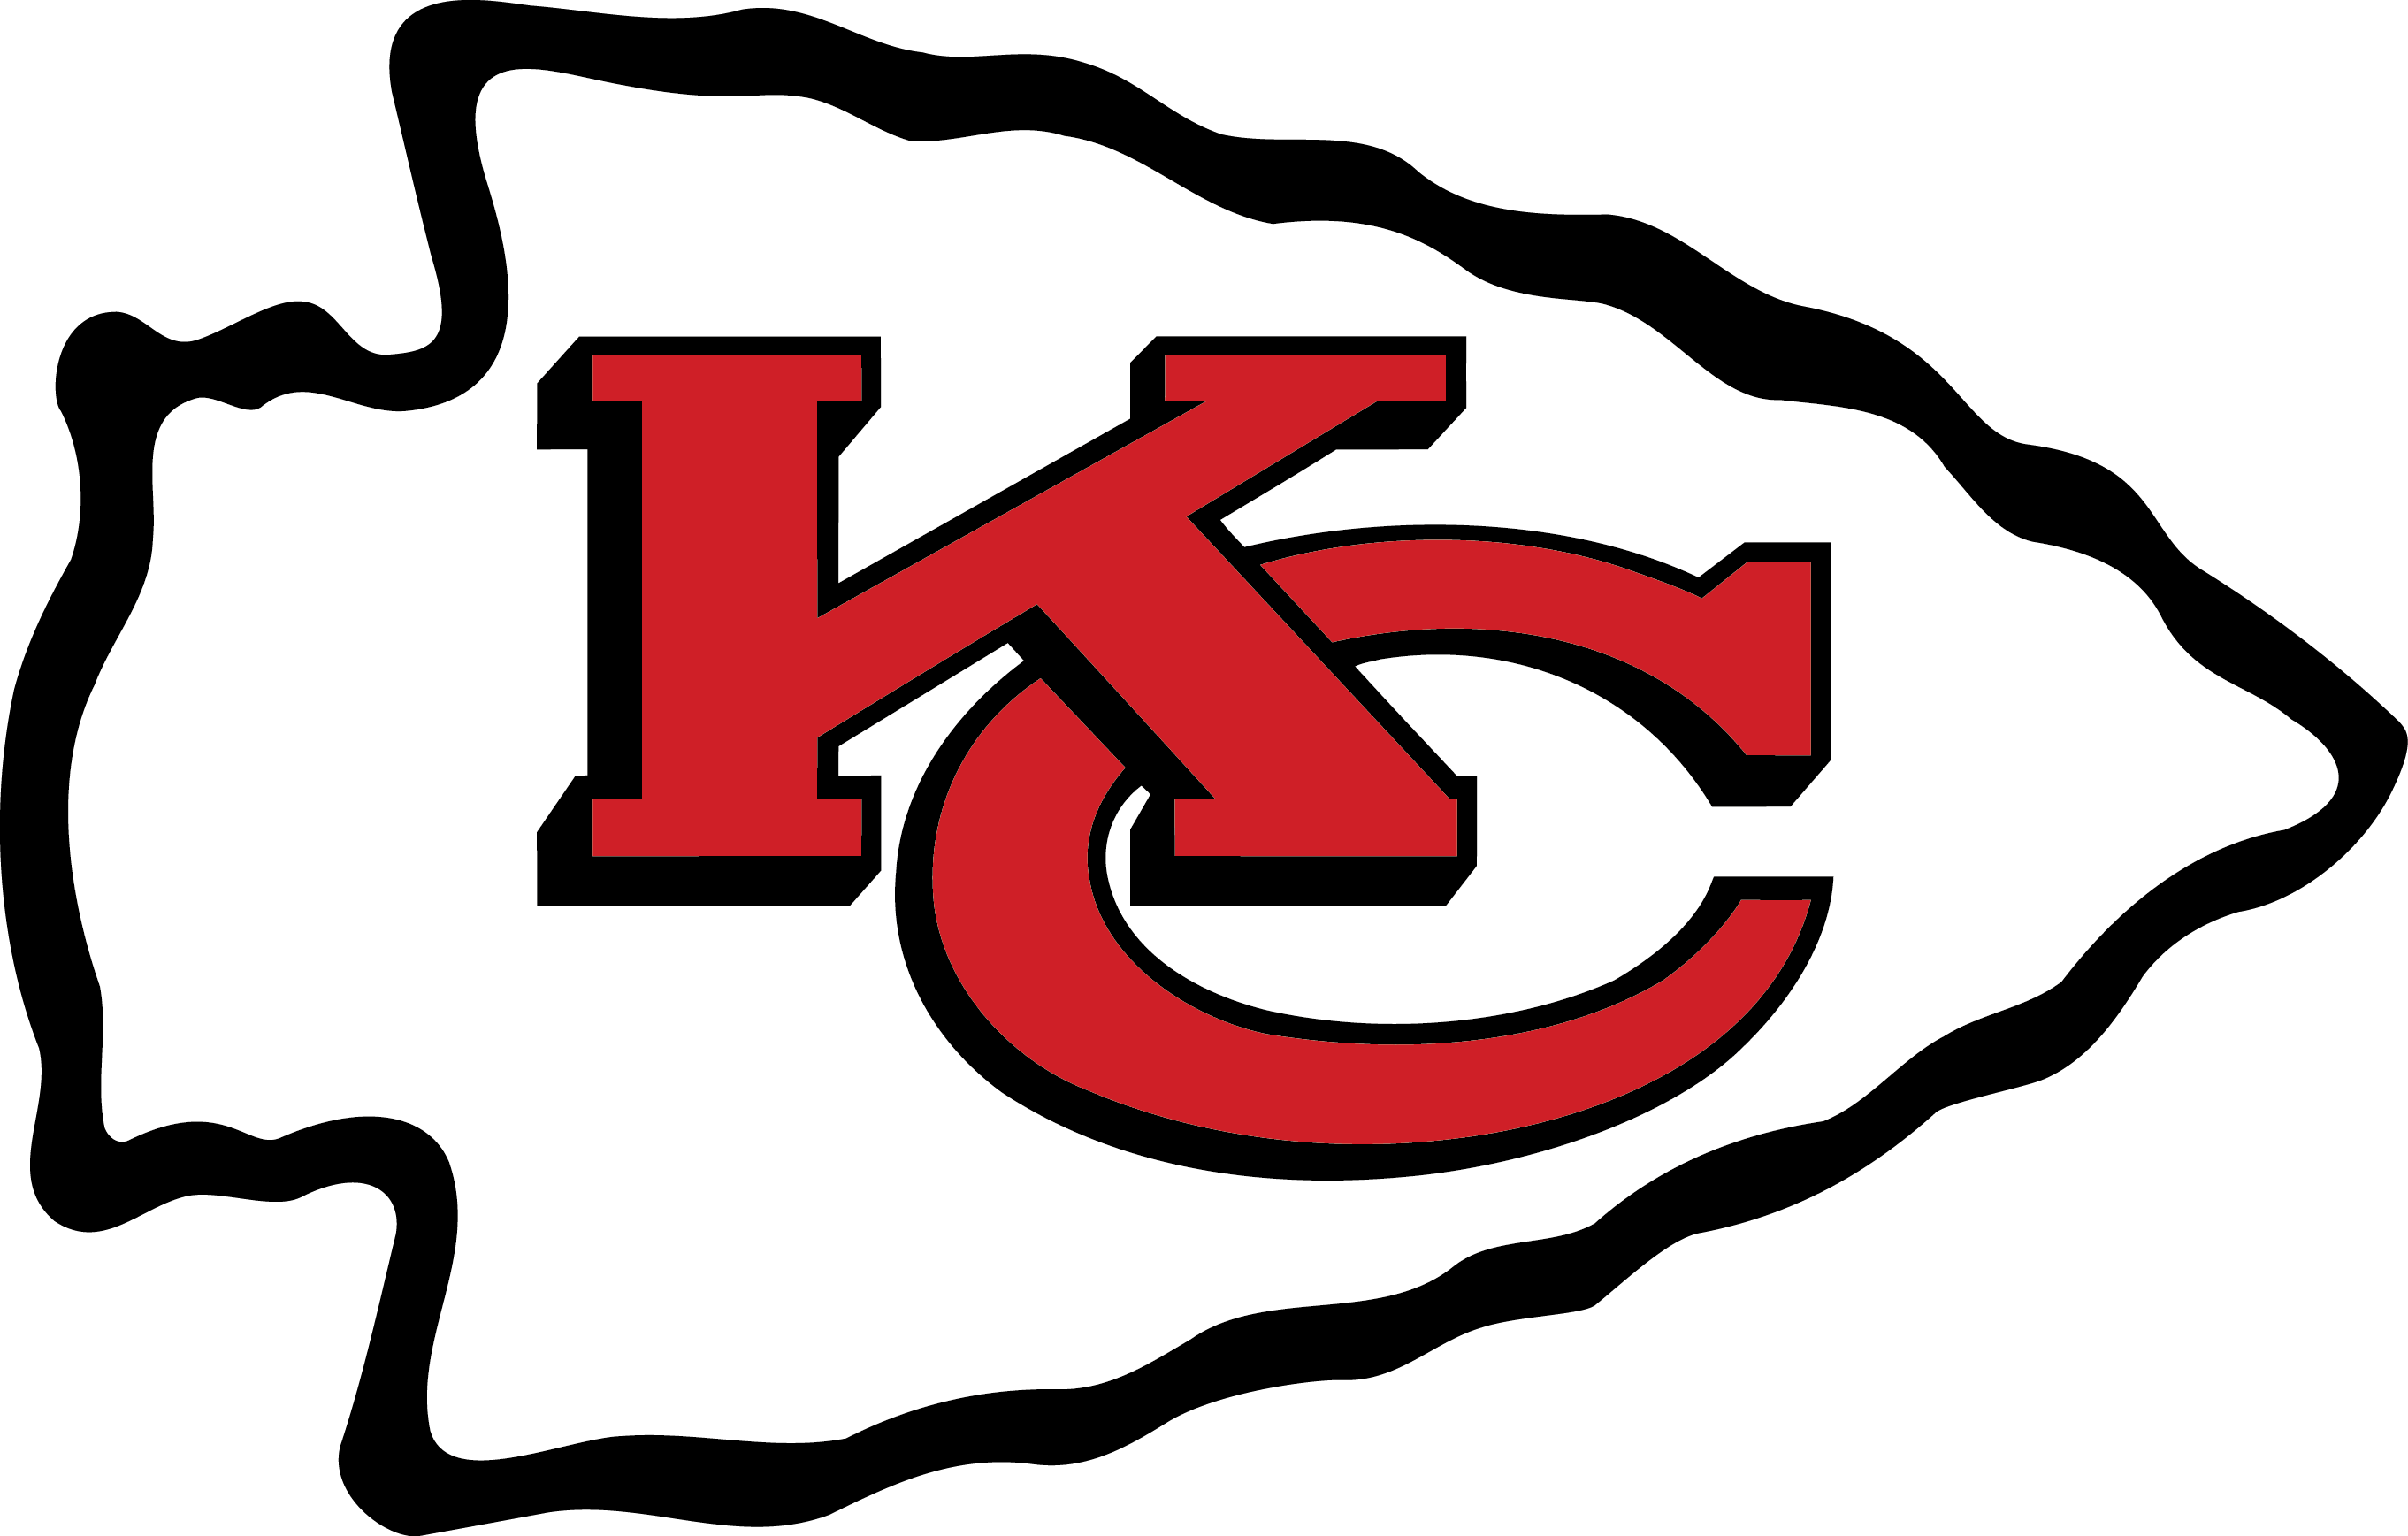 2723x1737 Kansas City Chiefs Logo Vector Eps Free Download, Logo, Icons